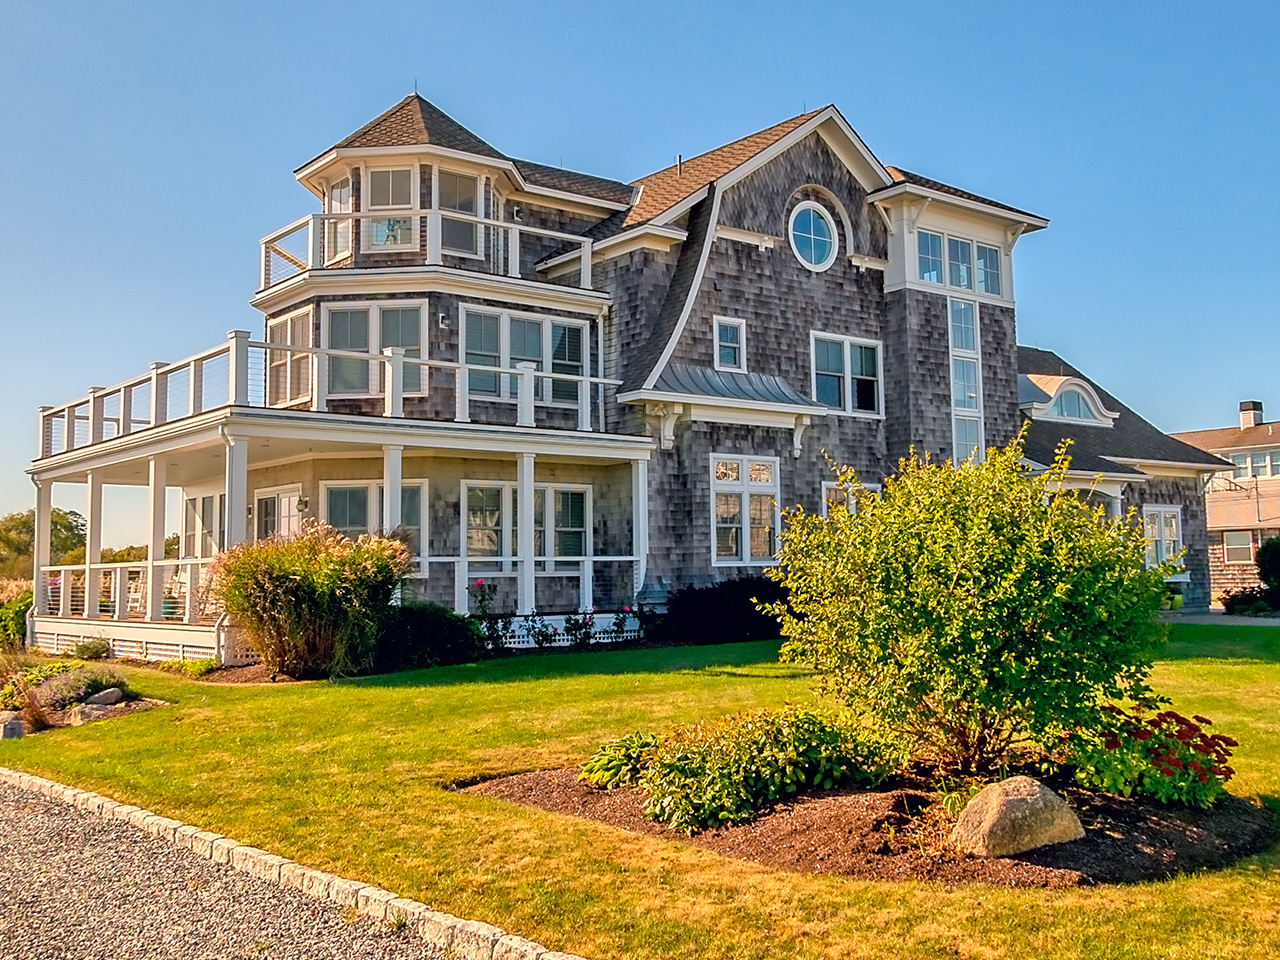 Stephen-Sullivan-Inc-Custom-Home-Builders-Rhode-Island-Coast-Guard-Beach-House-Feature